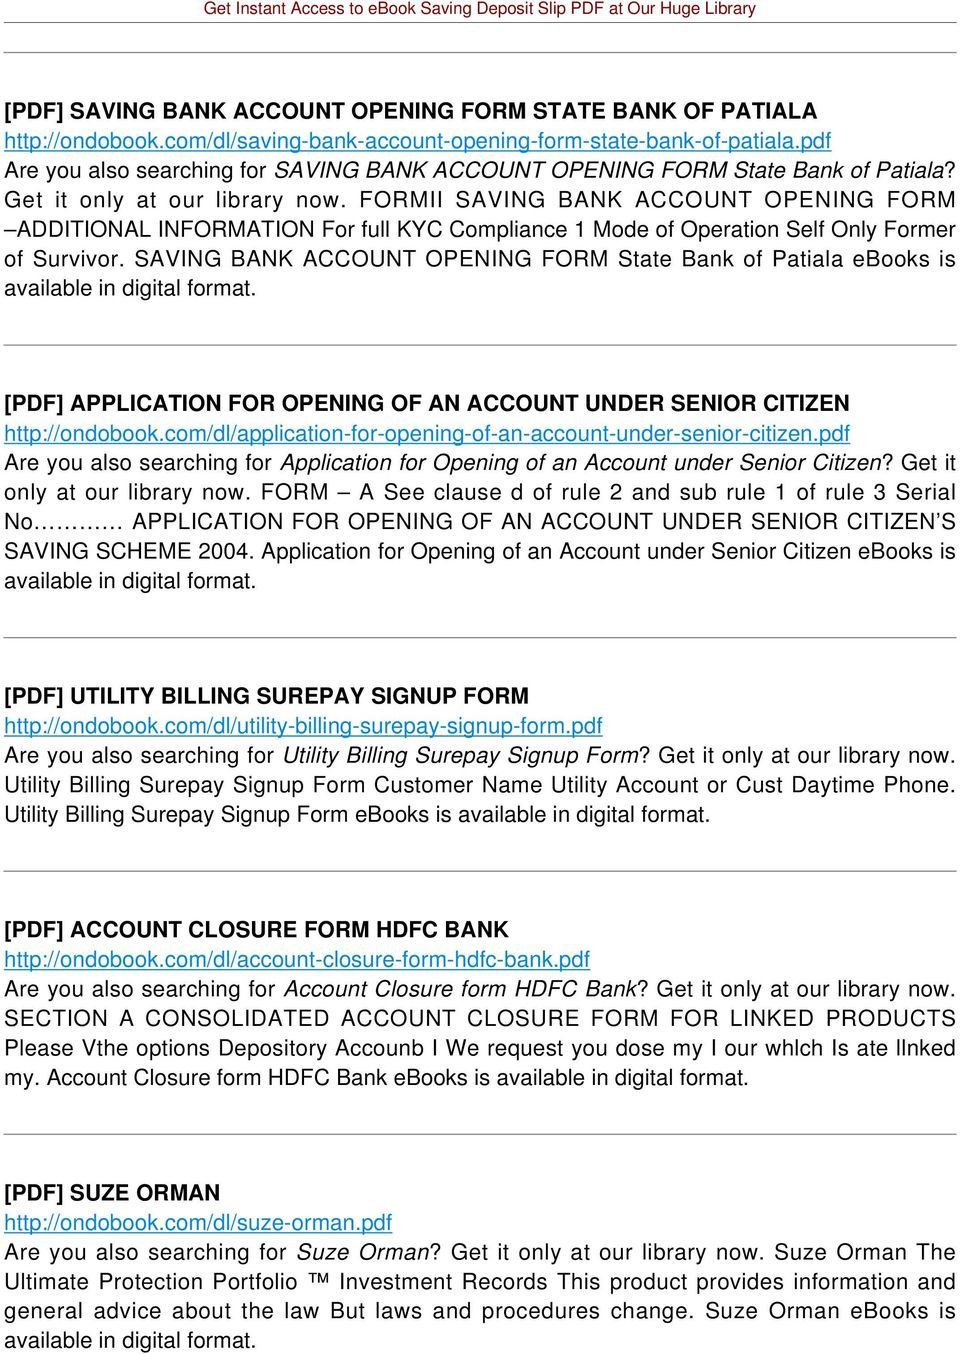 FORMII SAVING BANK ACCOUNT OPENING FORM ADDITIONAL INFORMATION For full KYC Compliance 1 Mode of Operation Self Only Former of Survivor.